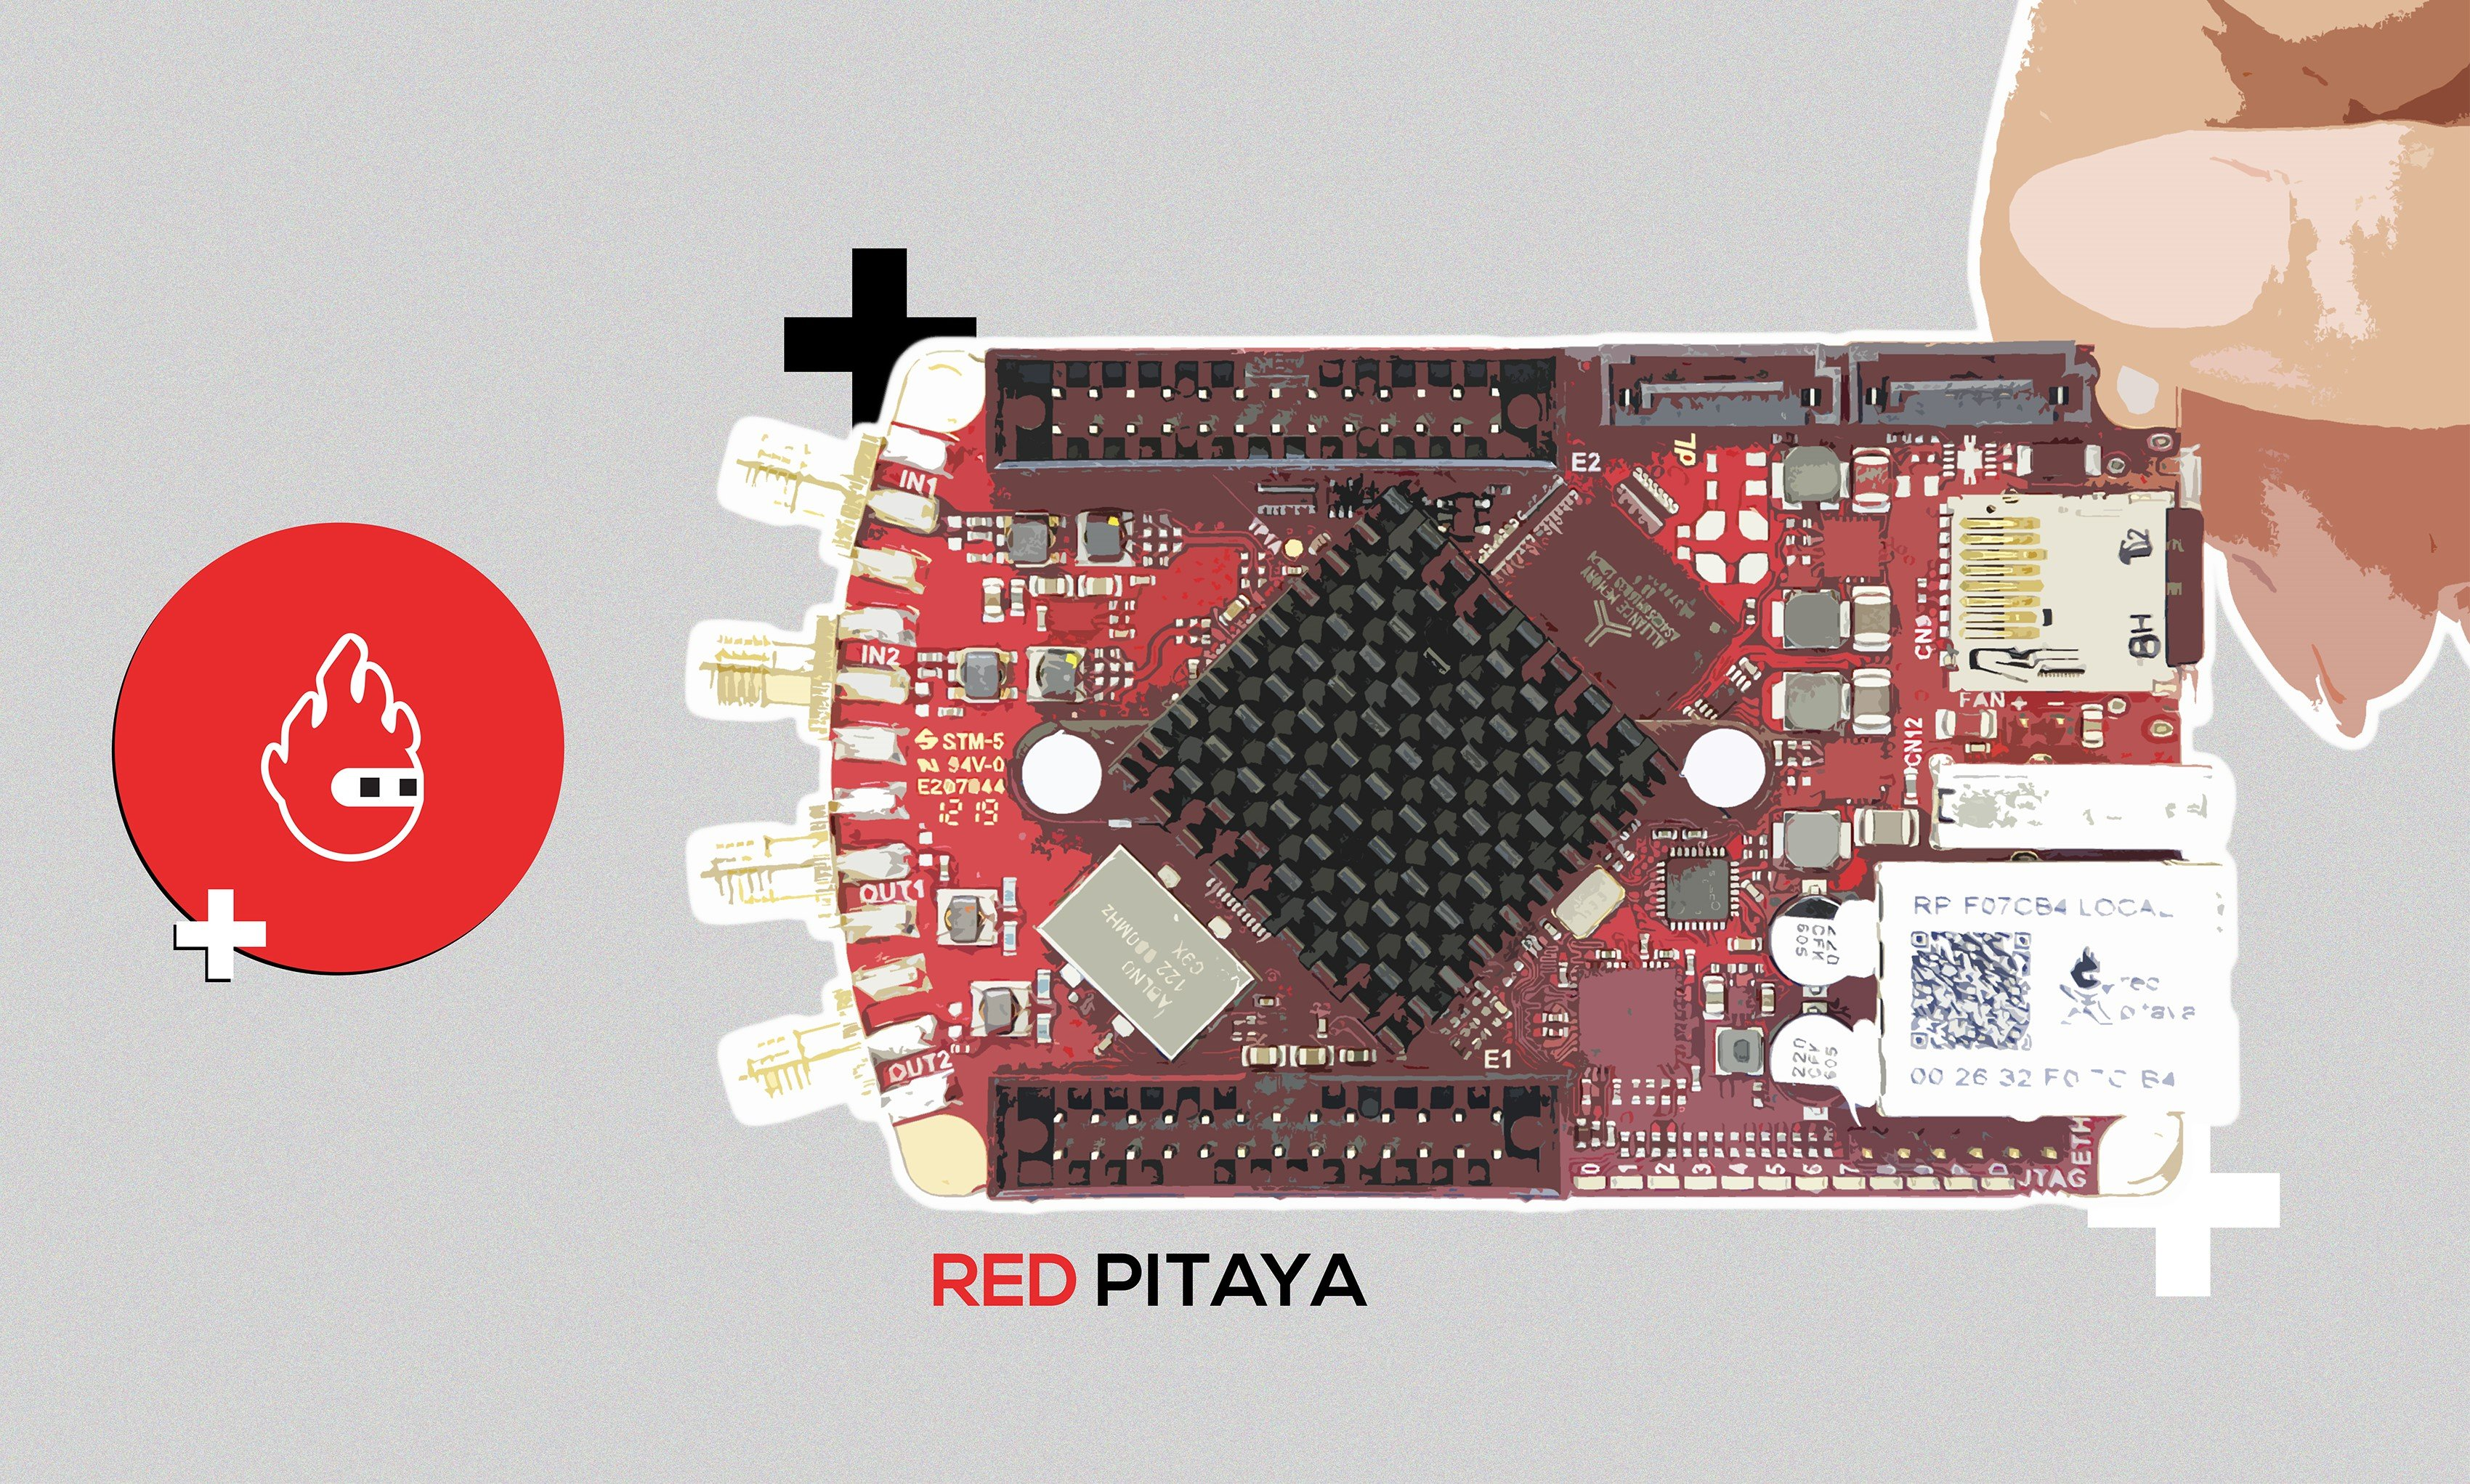 Red Pitaya as a Software Defined Radio (SDR)